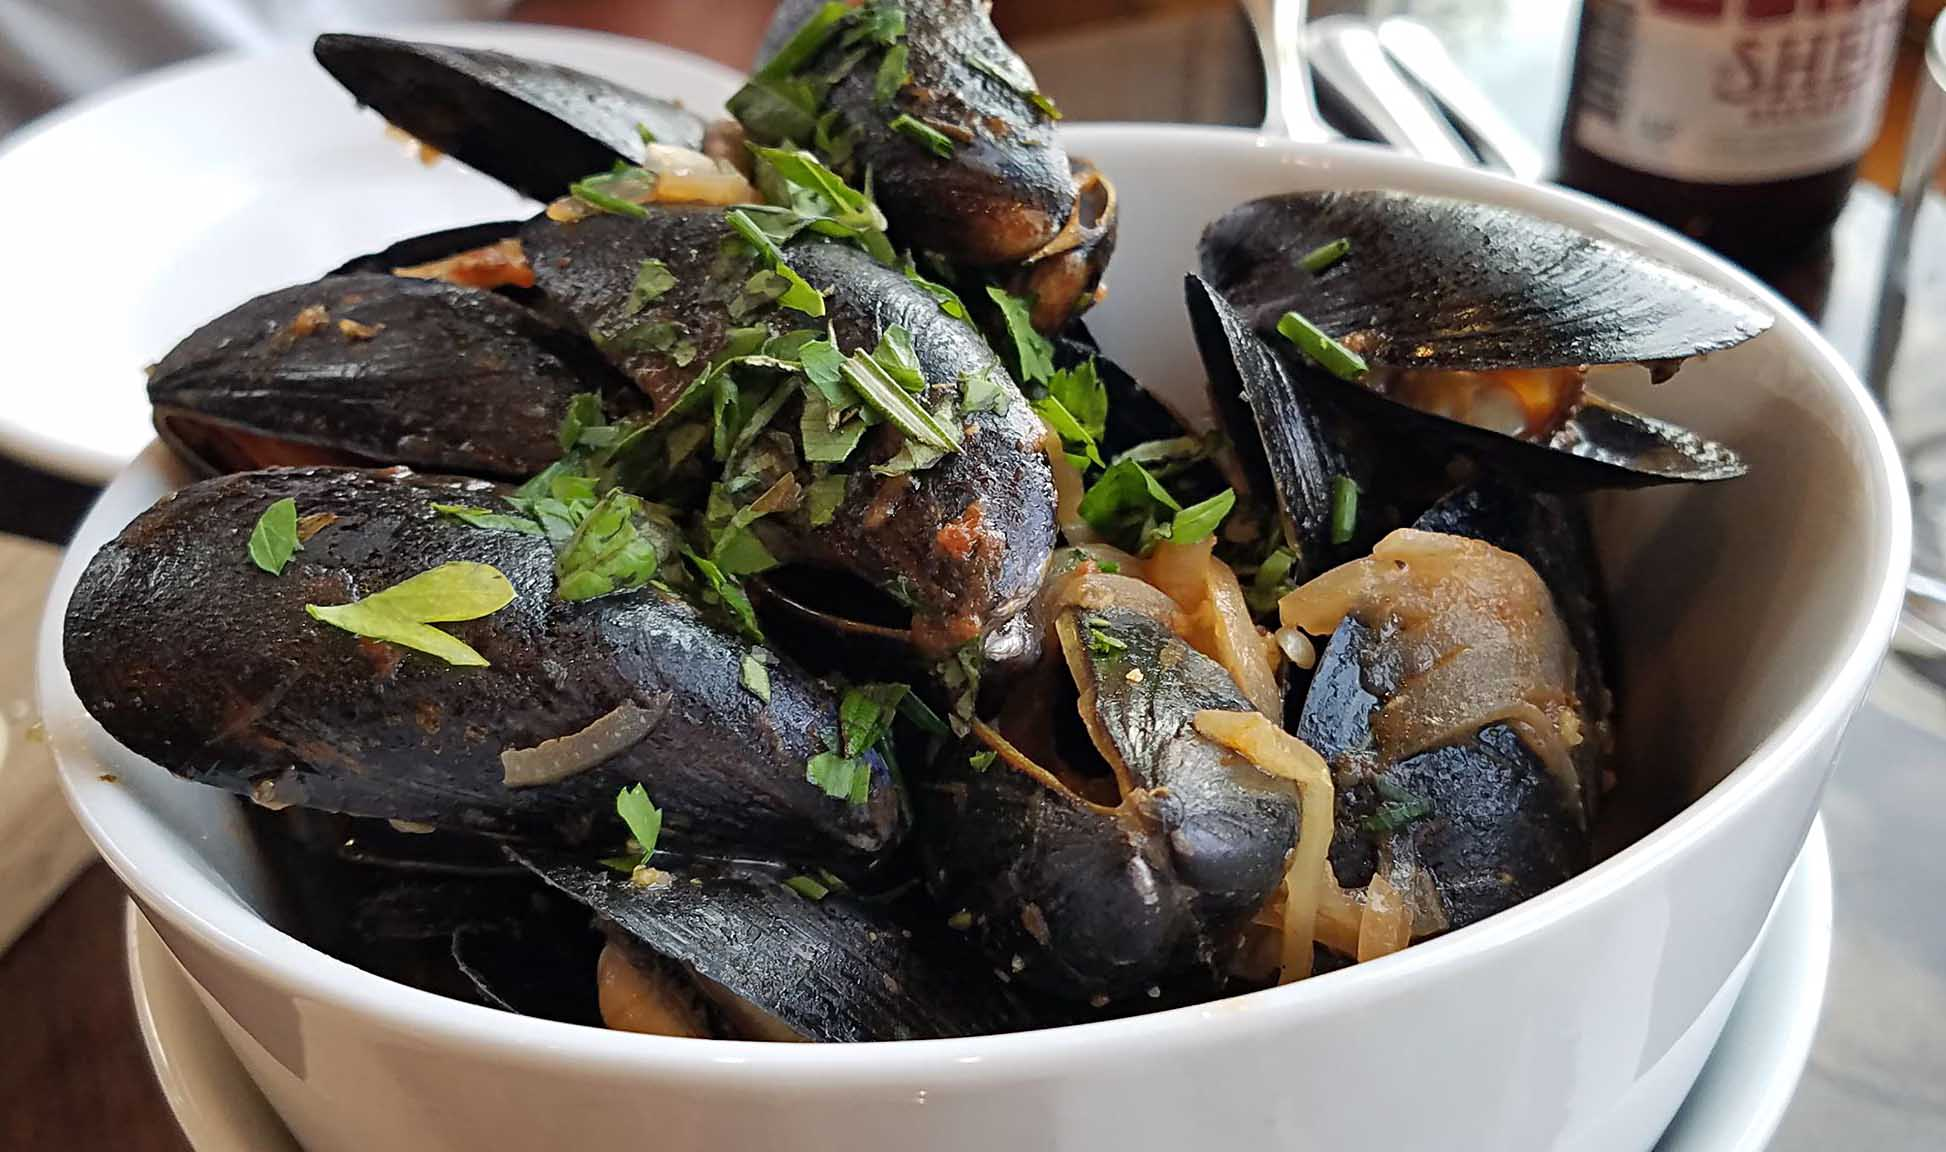 a bowl filled with mussels in a white wine butter sauce from a restaurant in greensboro vt